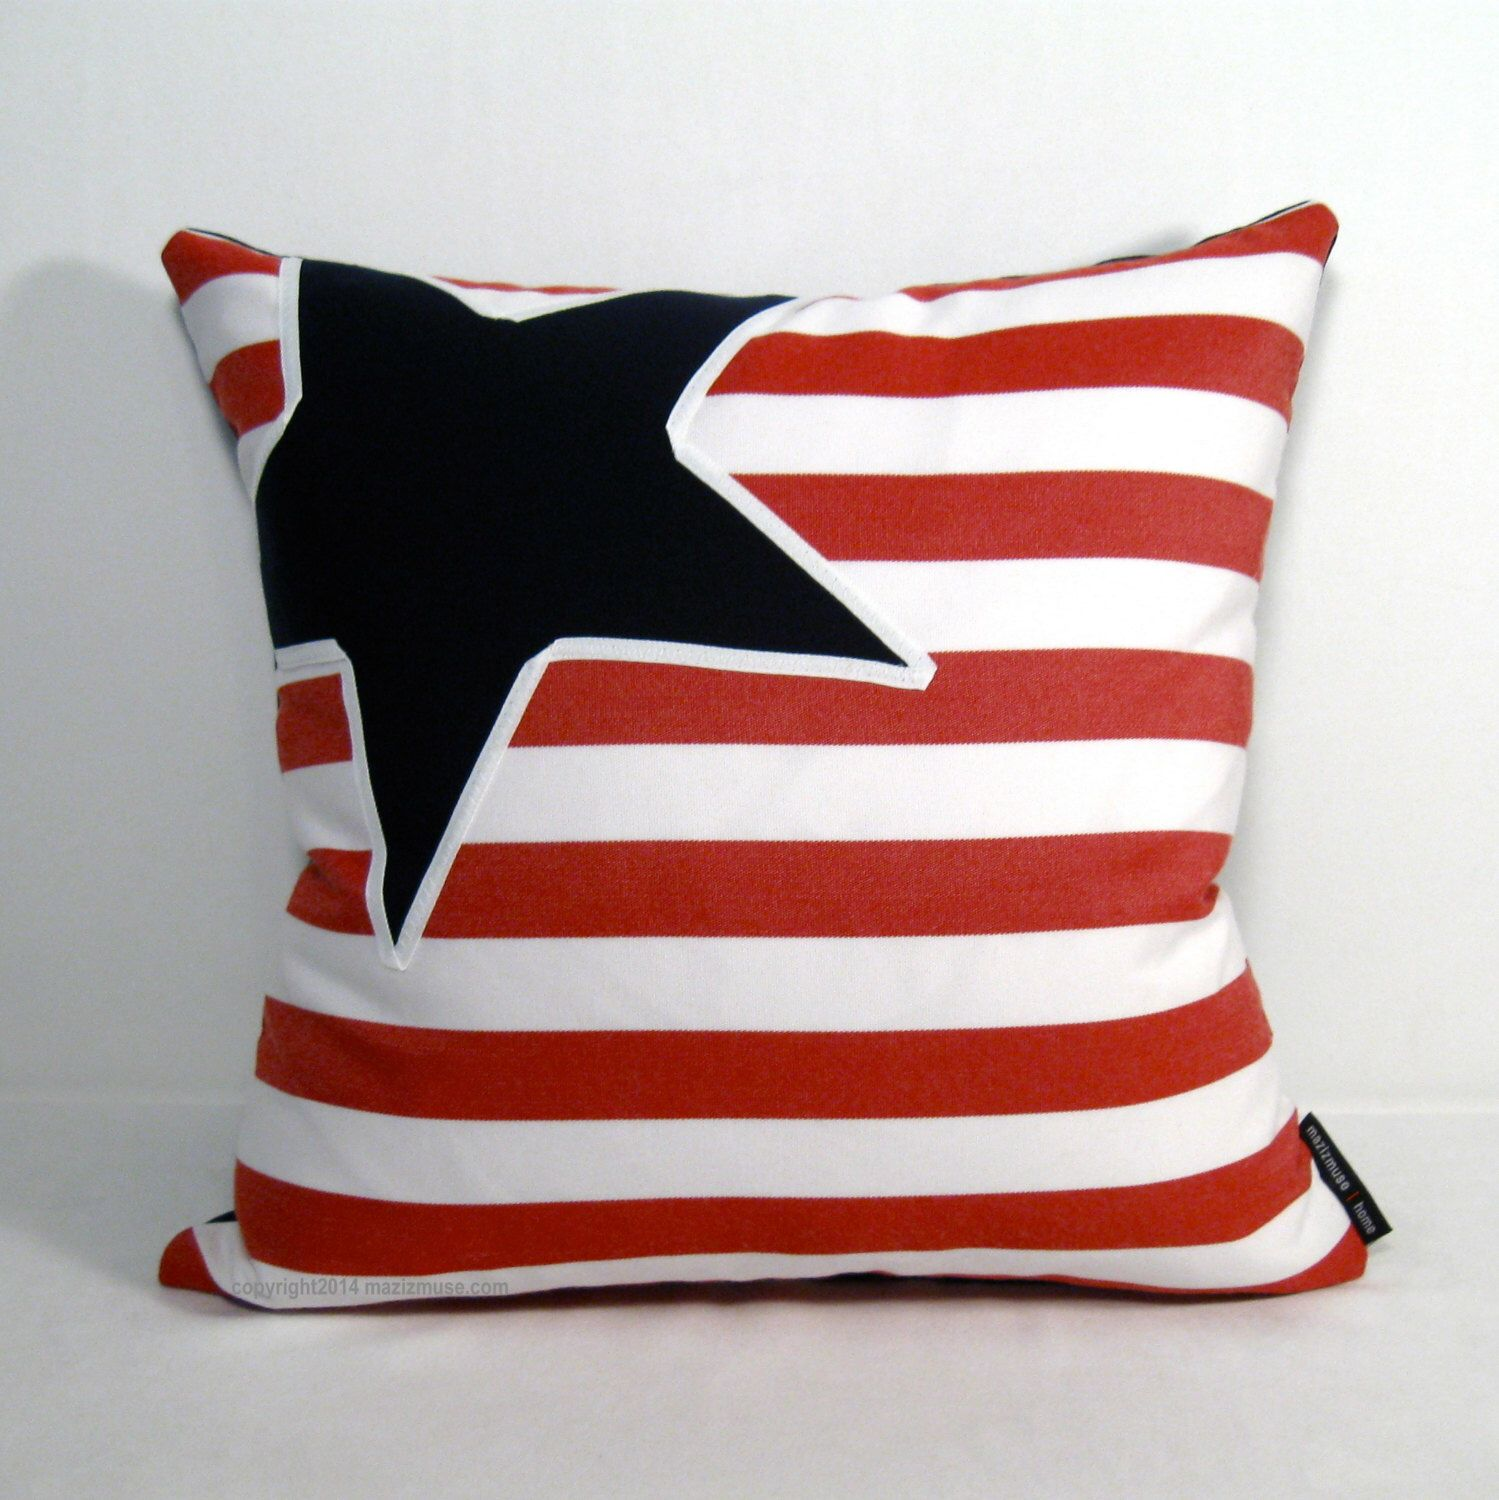 nautical pillow cover red white blue outdoor pillows decorative star pillows navy blue - Sunbrella Pillows